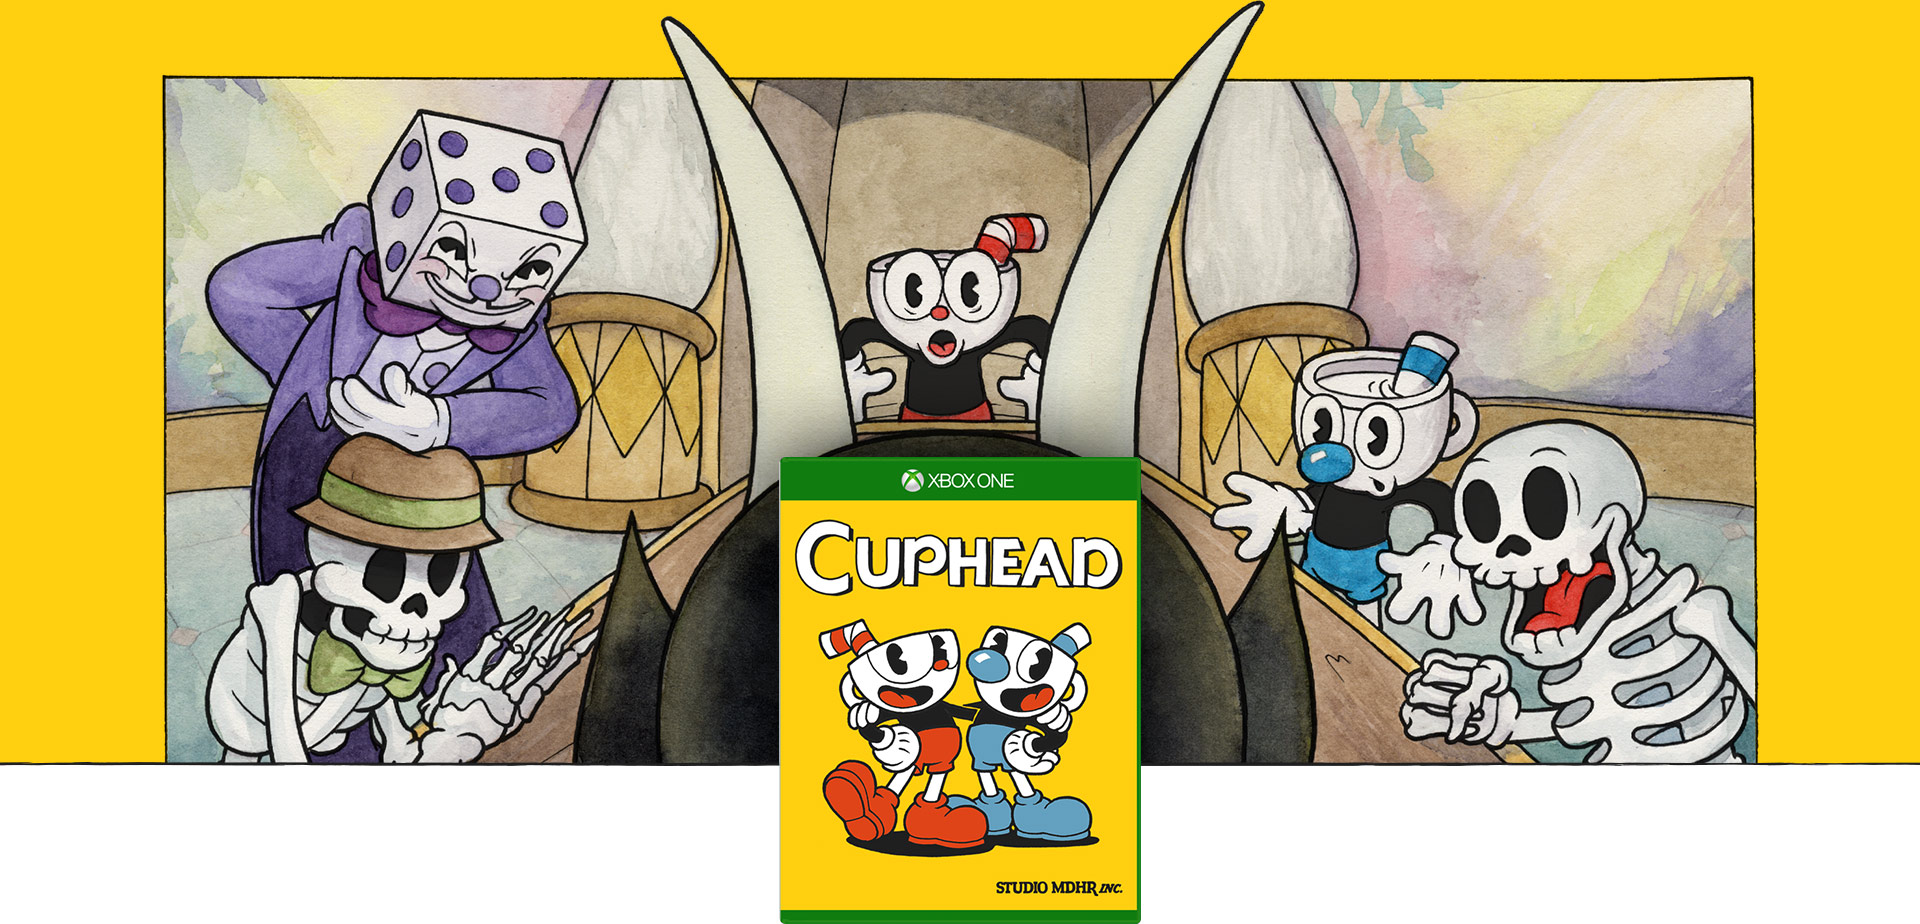 Cuphead-coverbillede